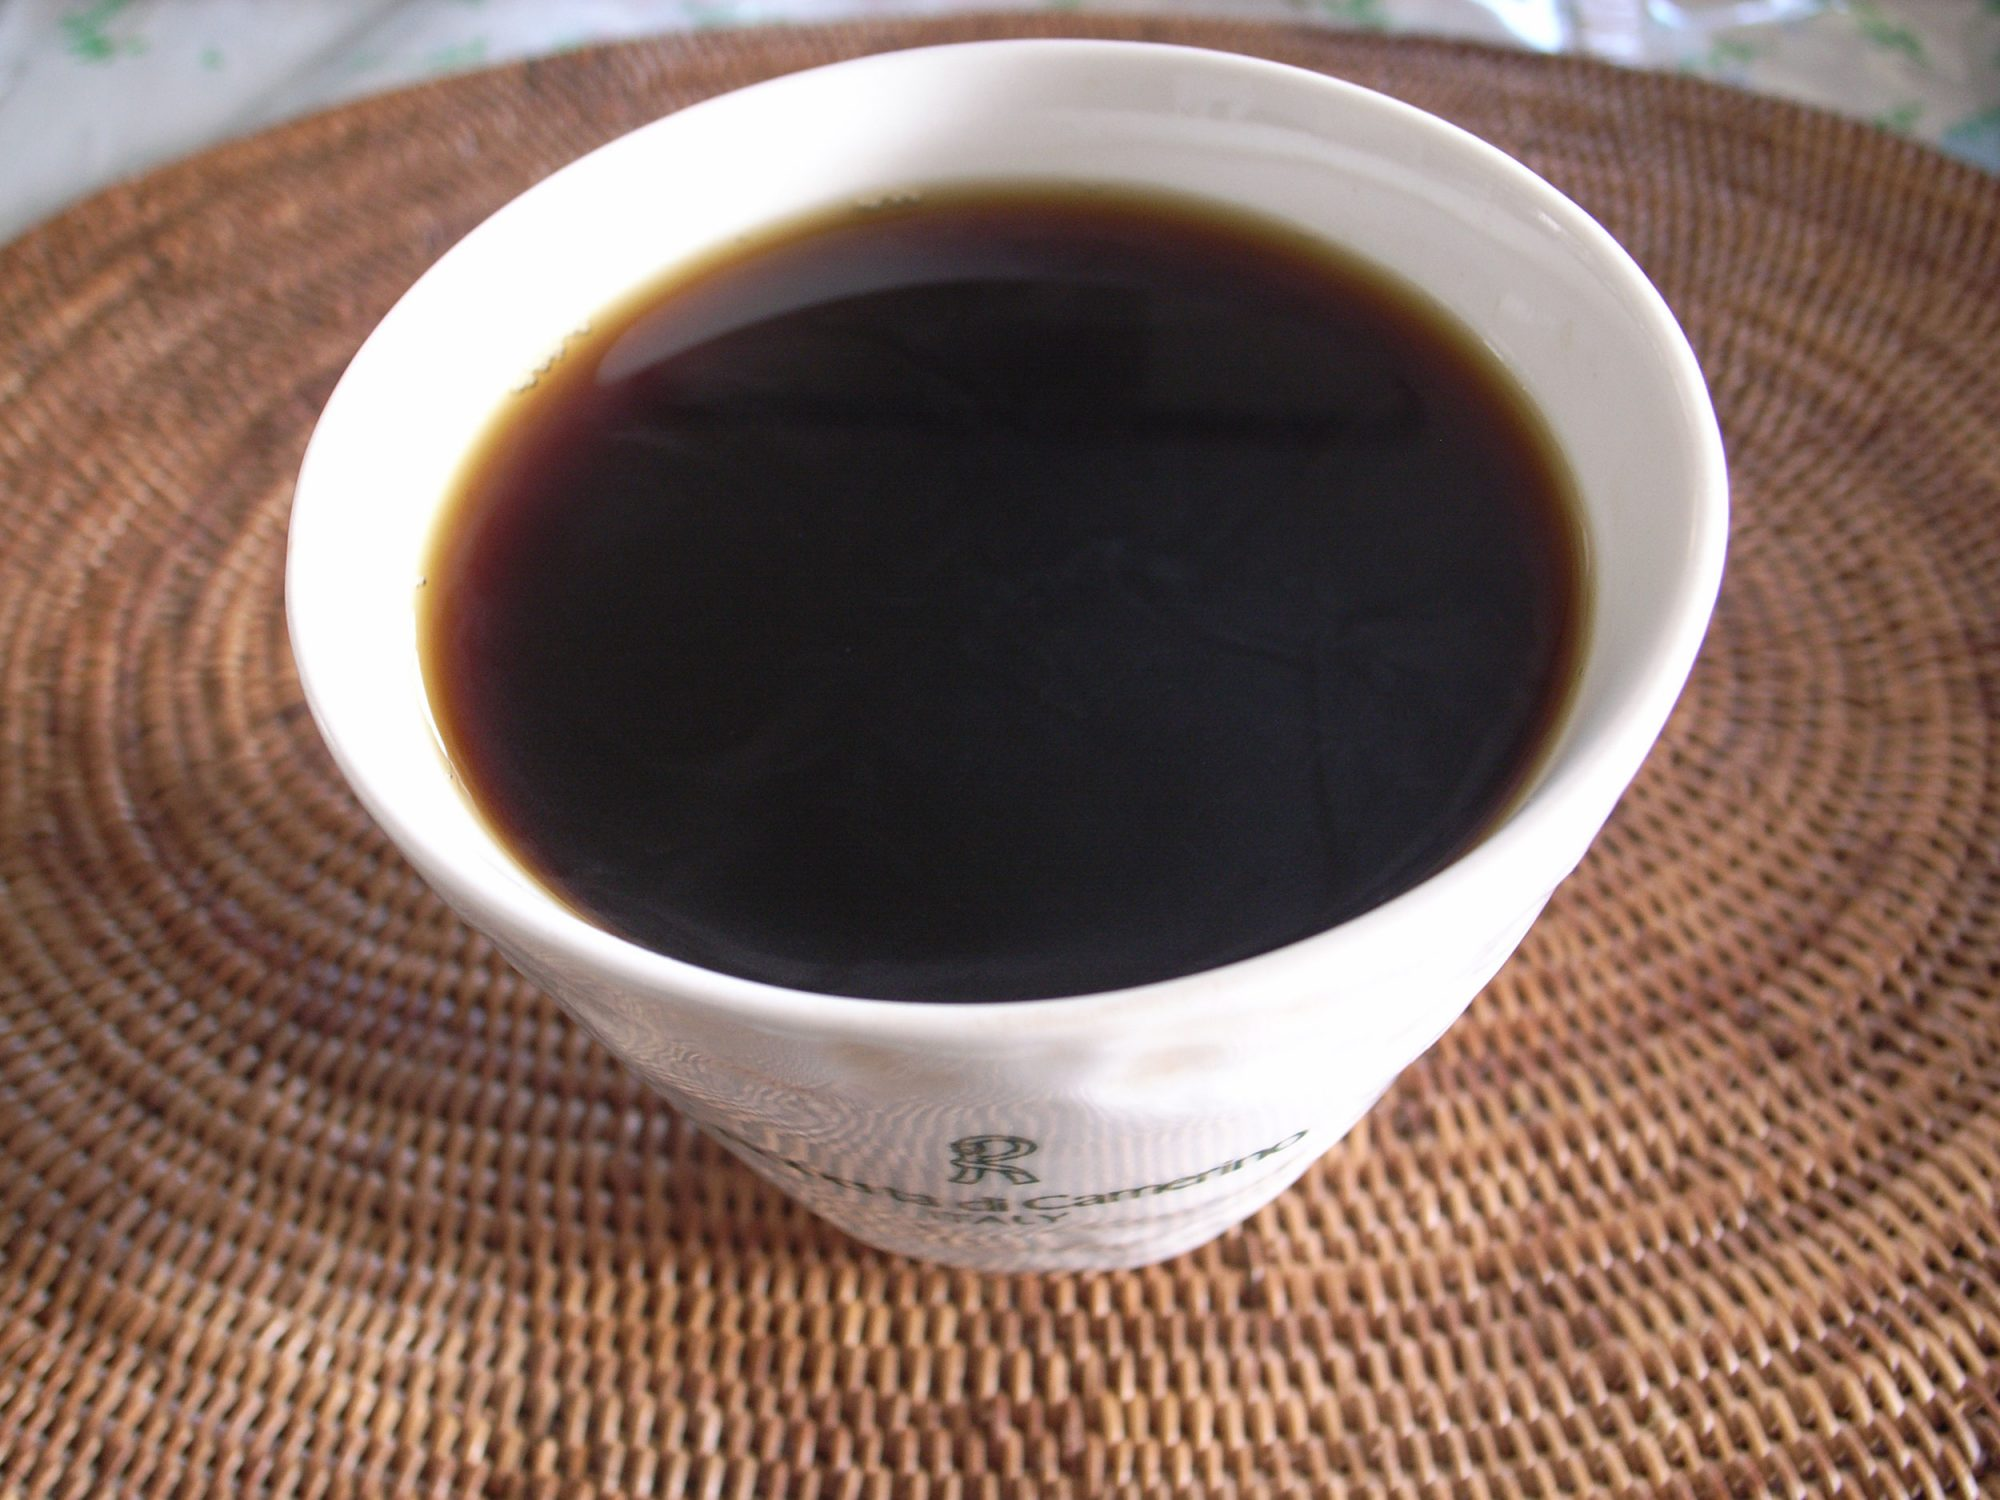 EC: Black Blood of the Earth Might Be the Most Caffeinated Beverage on Earth